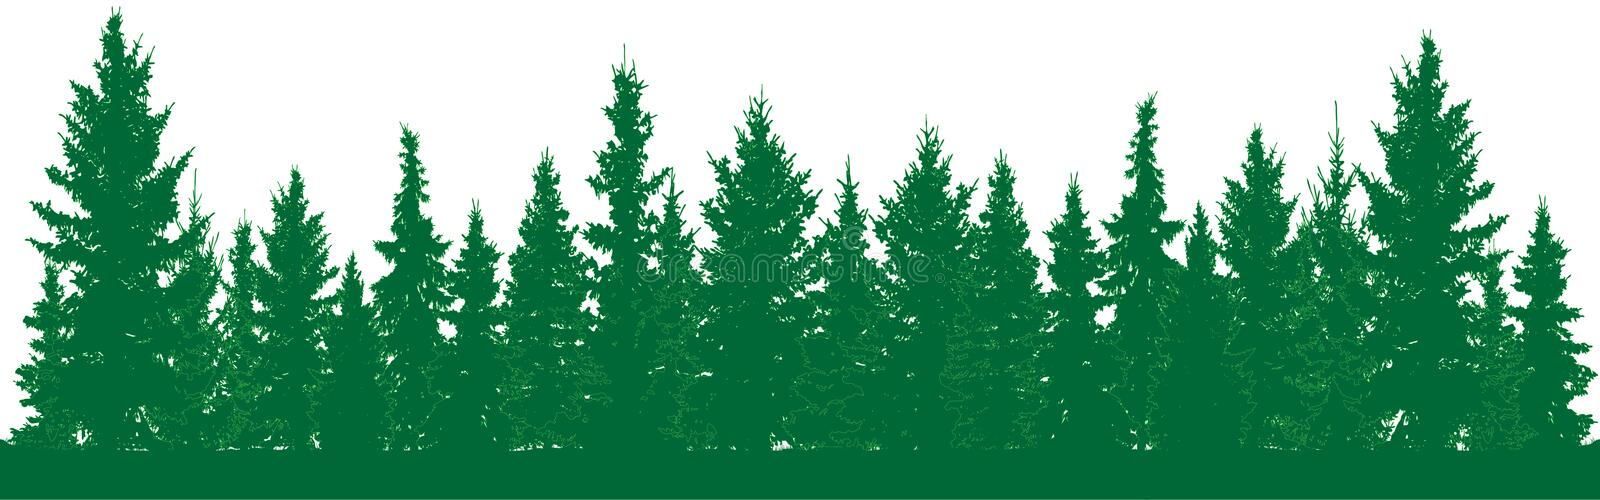 Forest of fir trees silhouette. Park alley of evergreen wood. Coniferous spruce. vector illustration